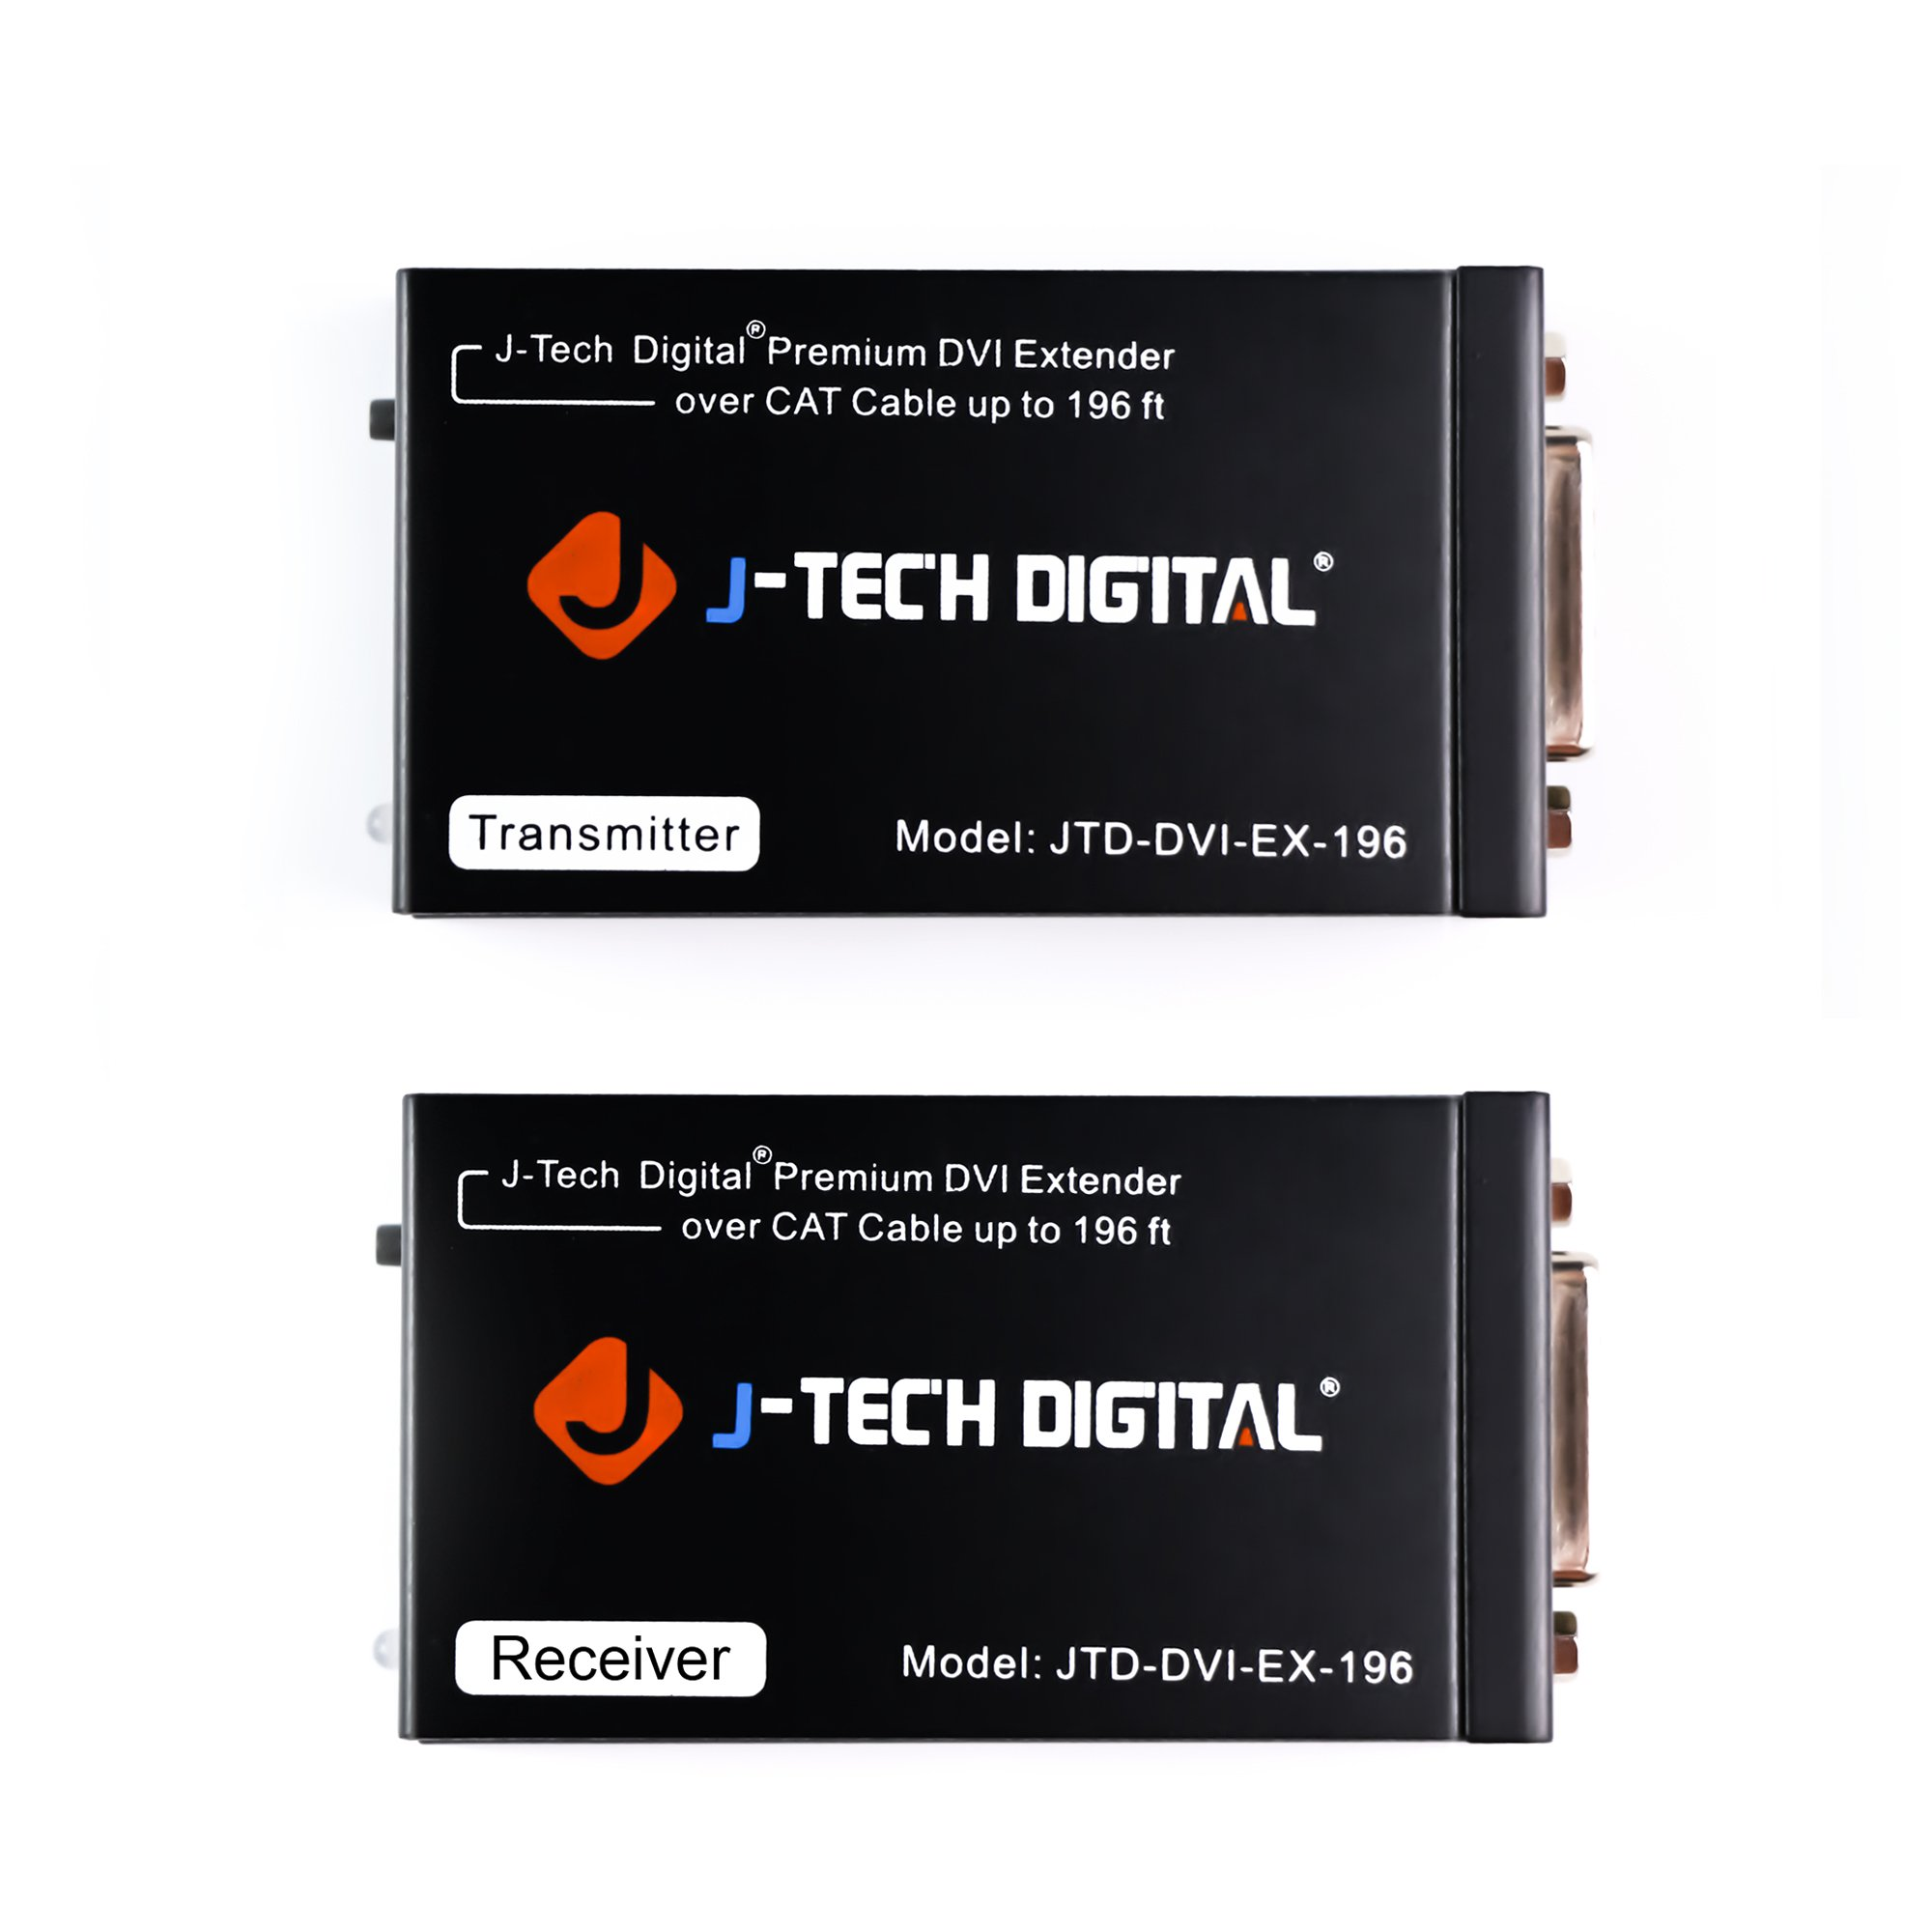 J-Tech Digital ProAV Premium Quality DVI Extender/DVI Amplifier/DVI Splitter Over CAT 5 / CAT 5E / CAT 6 Ethernet Cable by J-Tech Digital